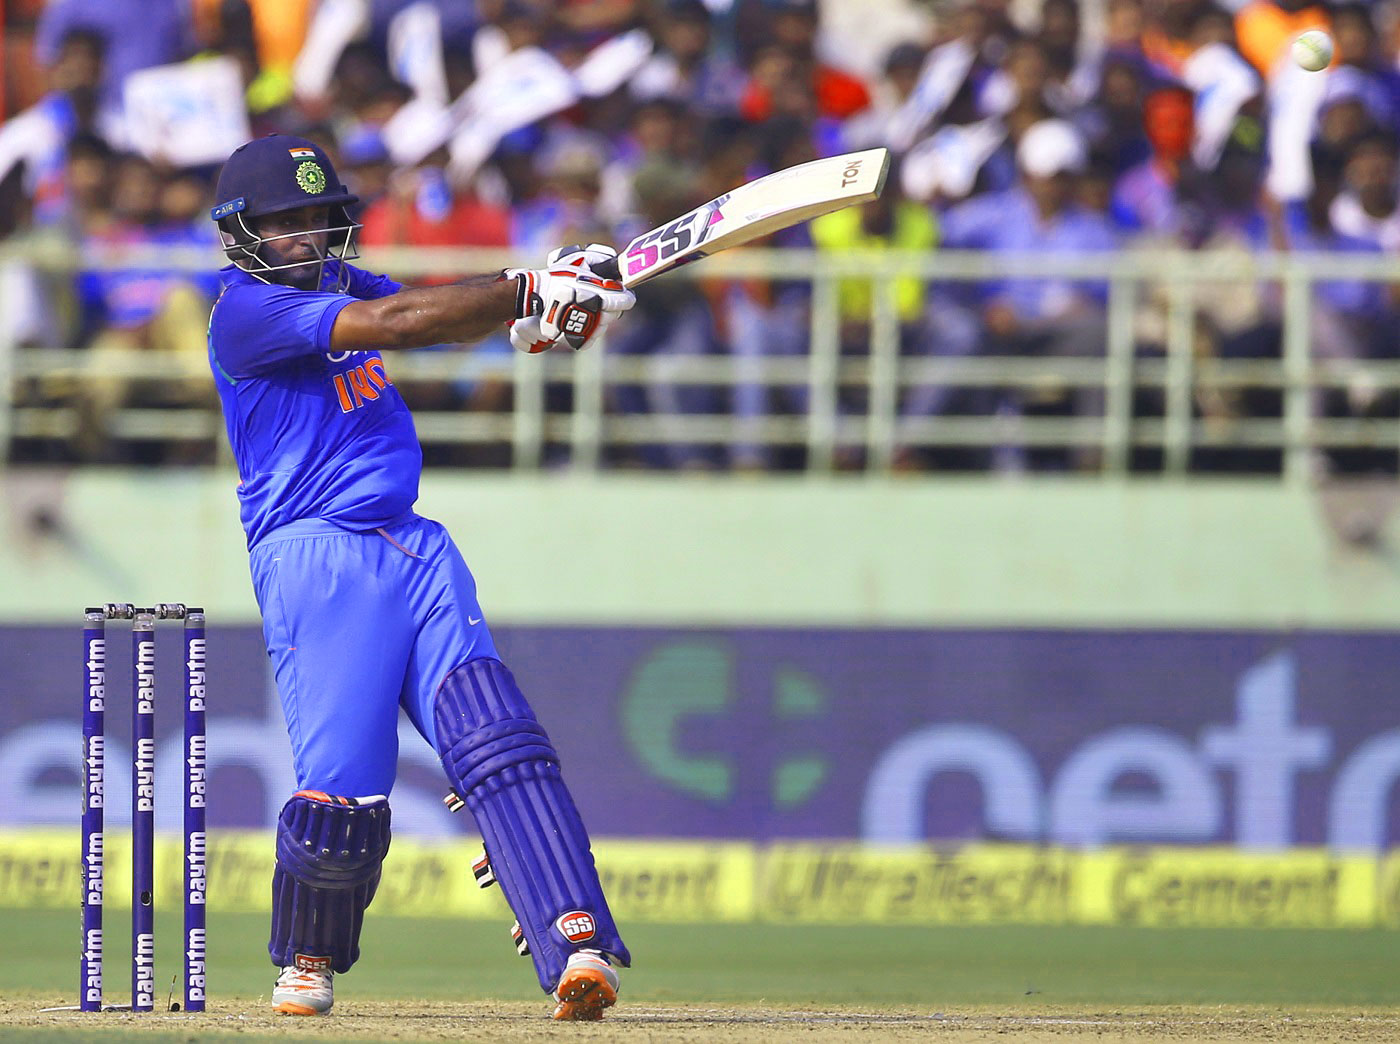 INDIAN CRICKET TEAM PLAYER IMAGES WALLPAPER PICS